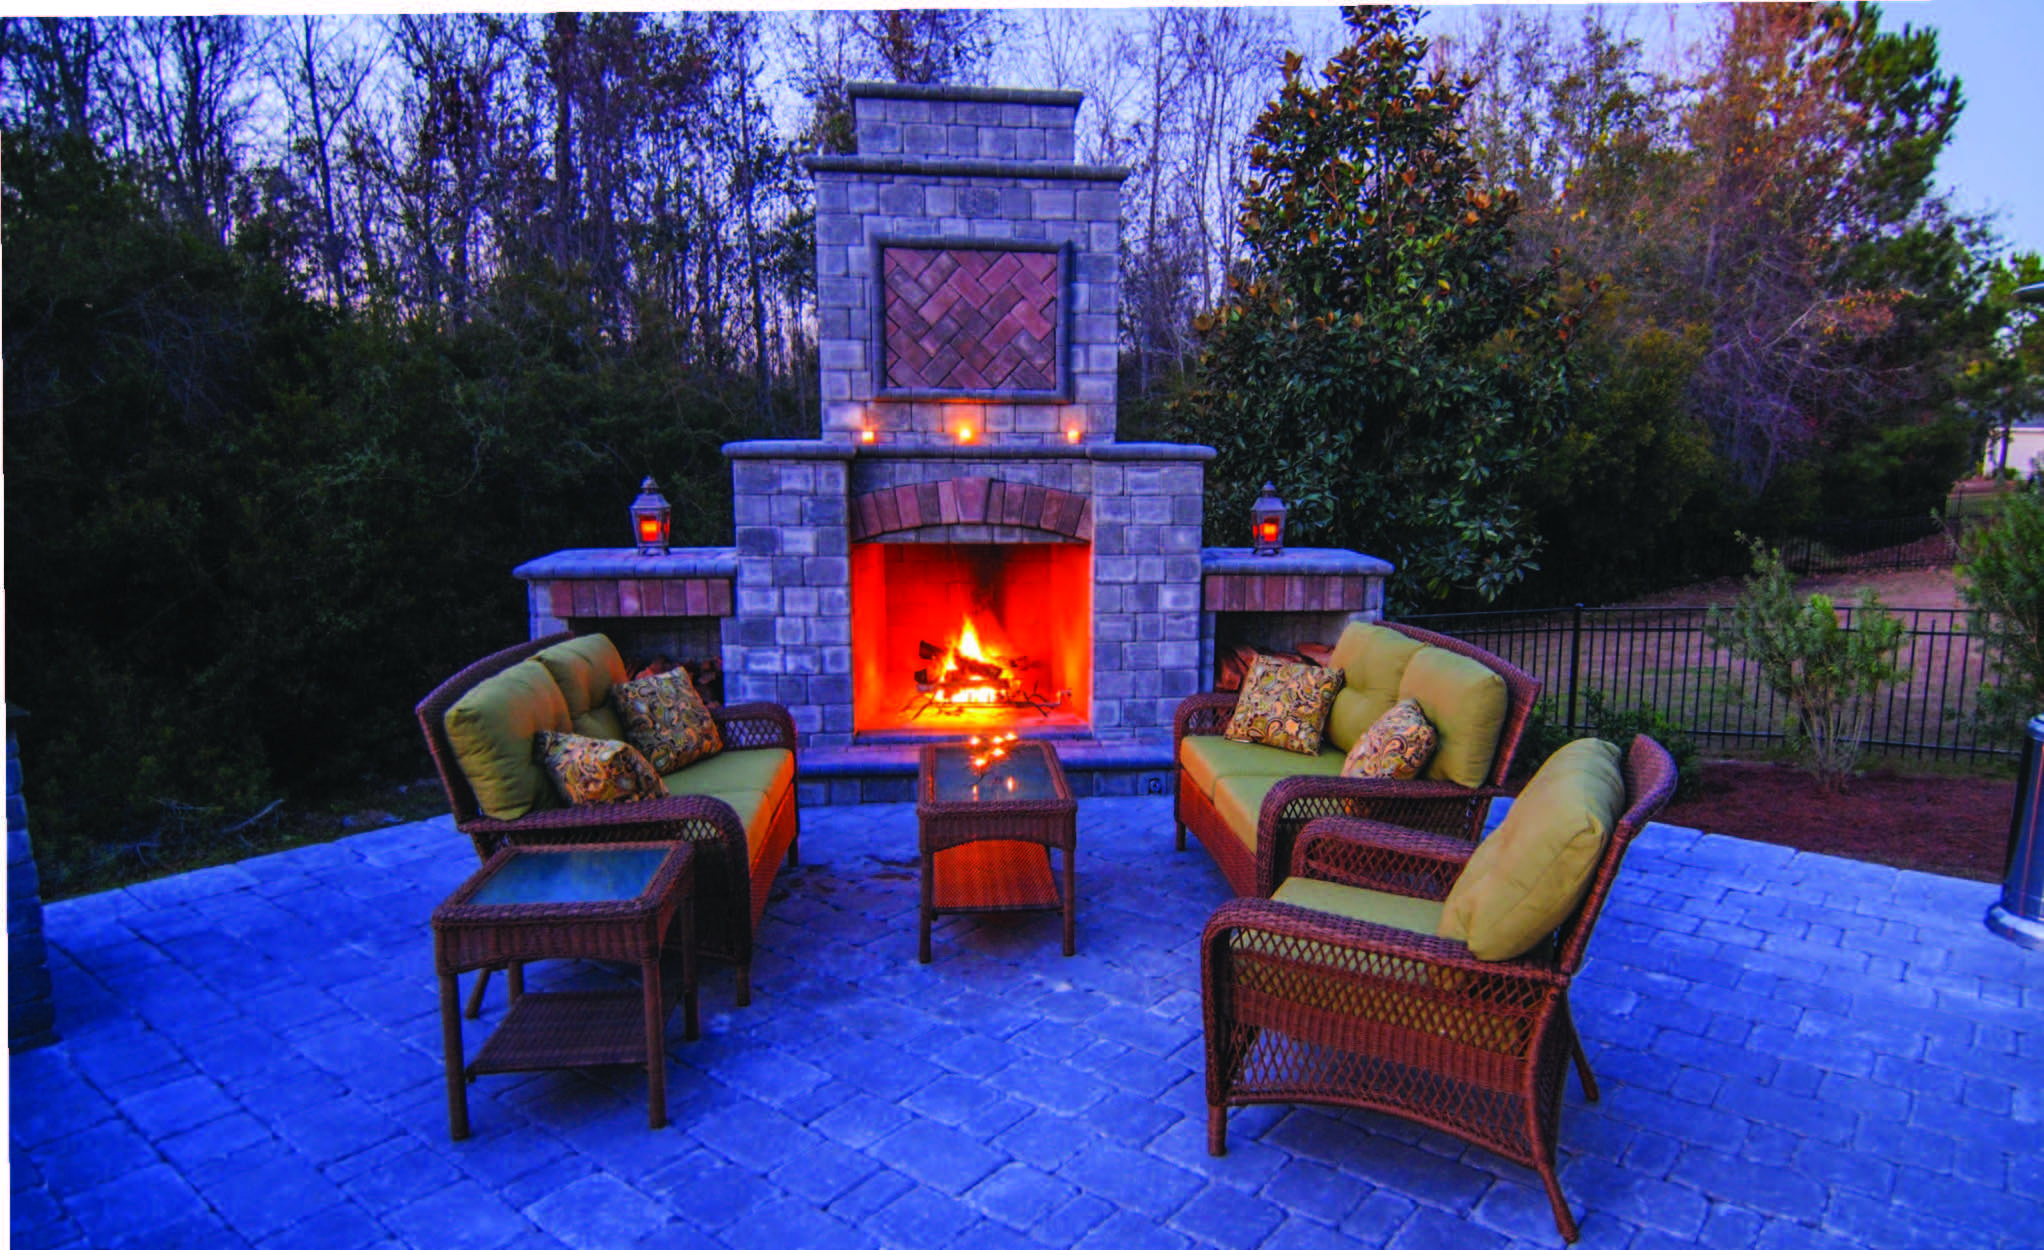 Outdoor fireplace kits do it yourself bluffton hiltonhead outdoor fireplace kits do it yourself bluffton hiltonhead solutioingenieria Choice Image